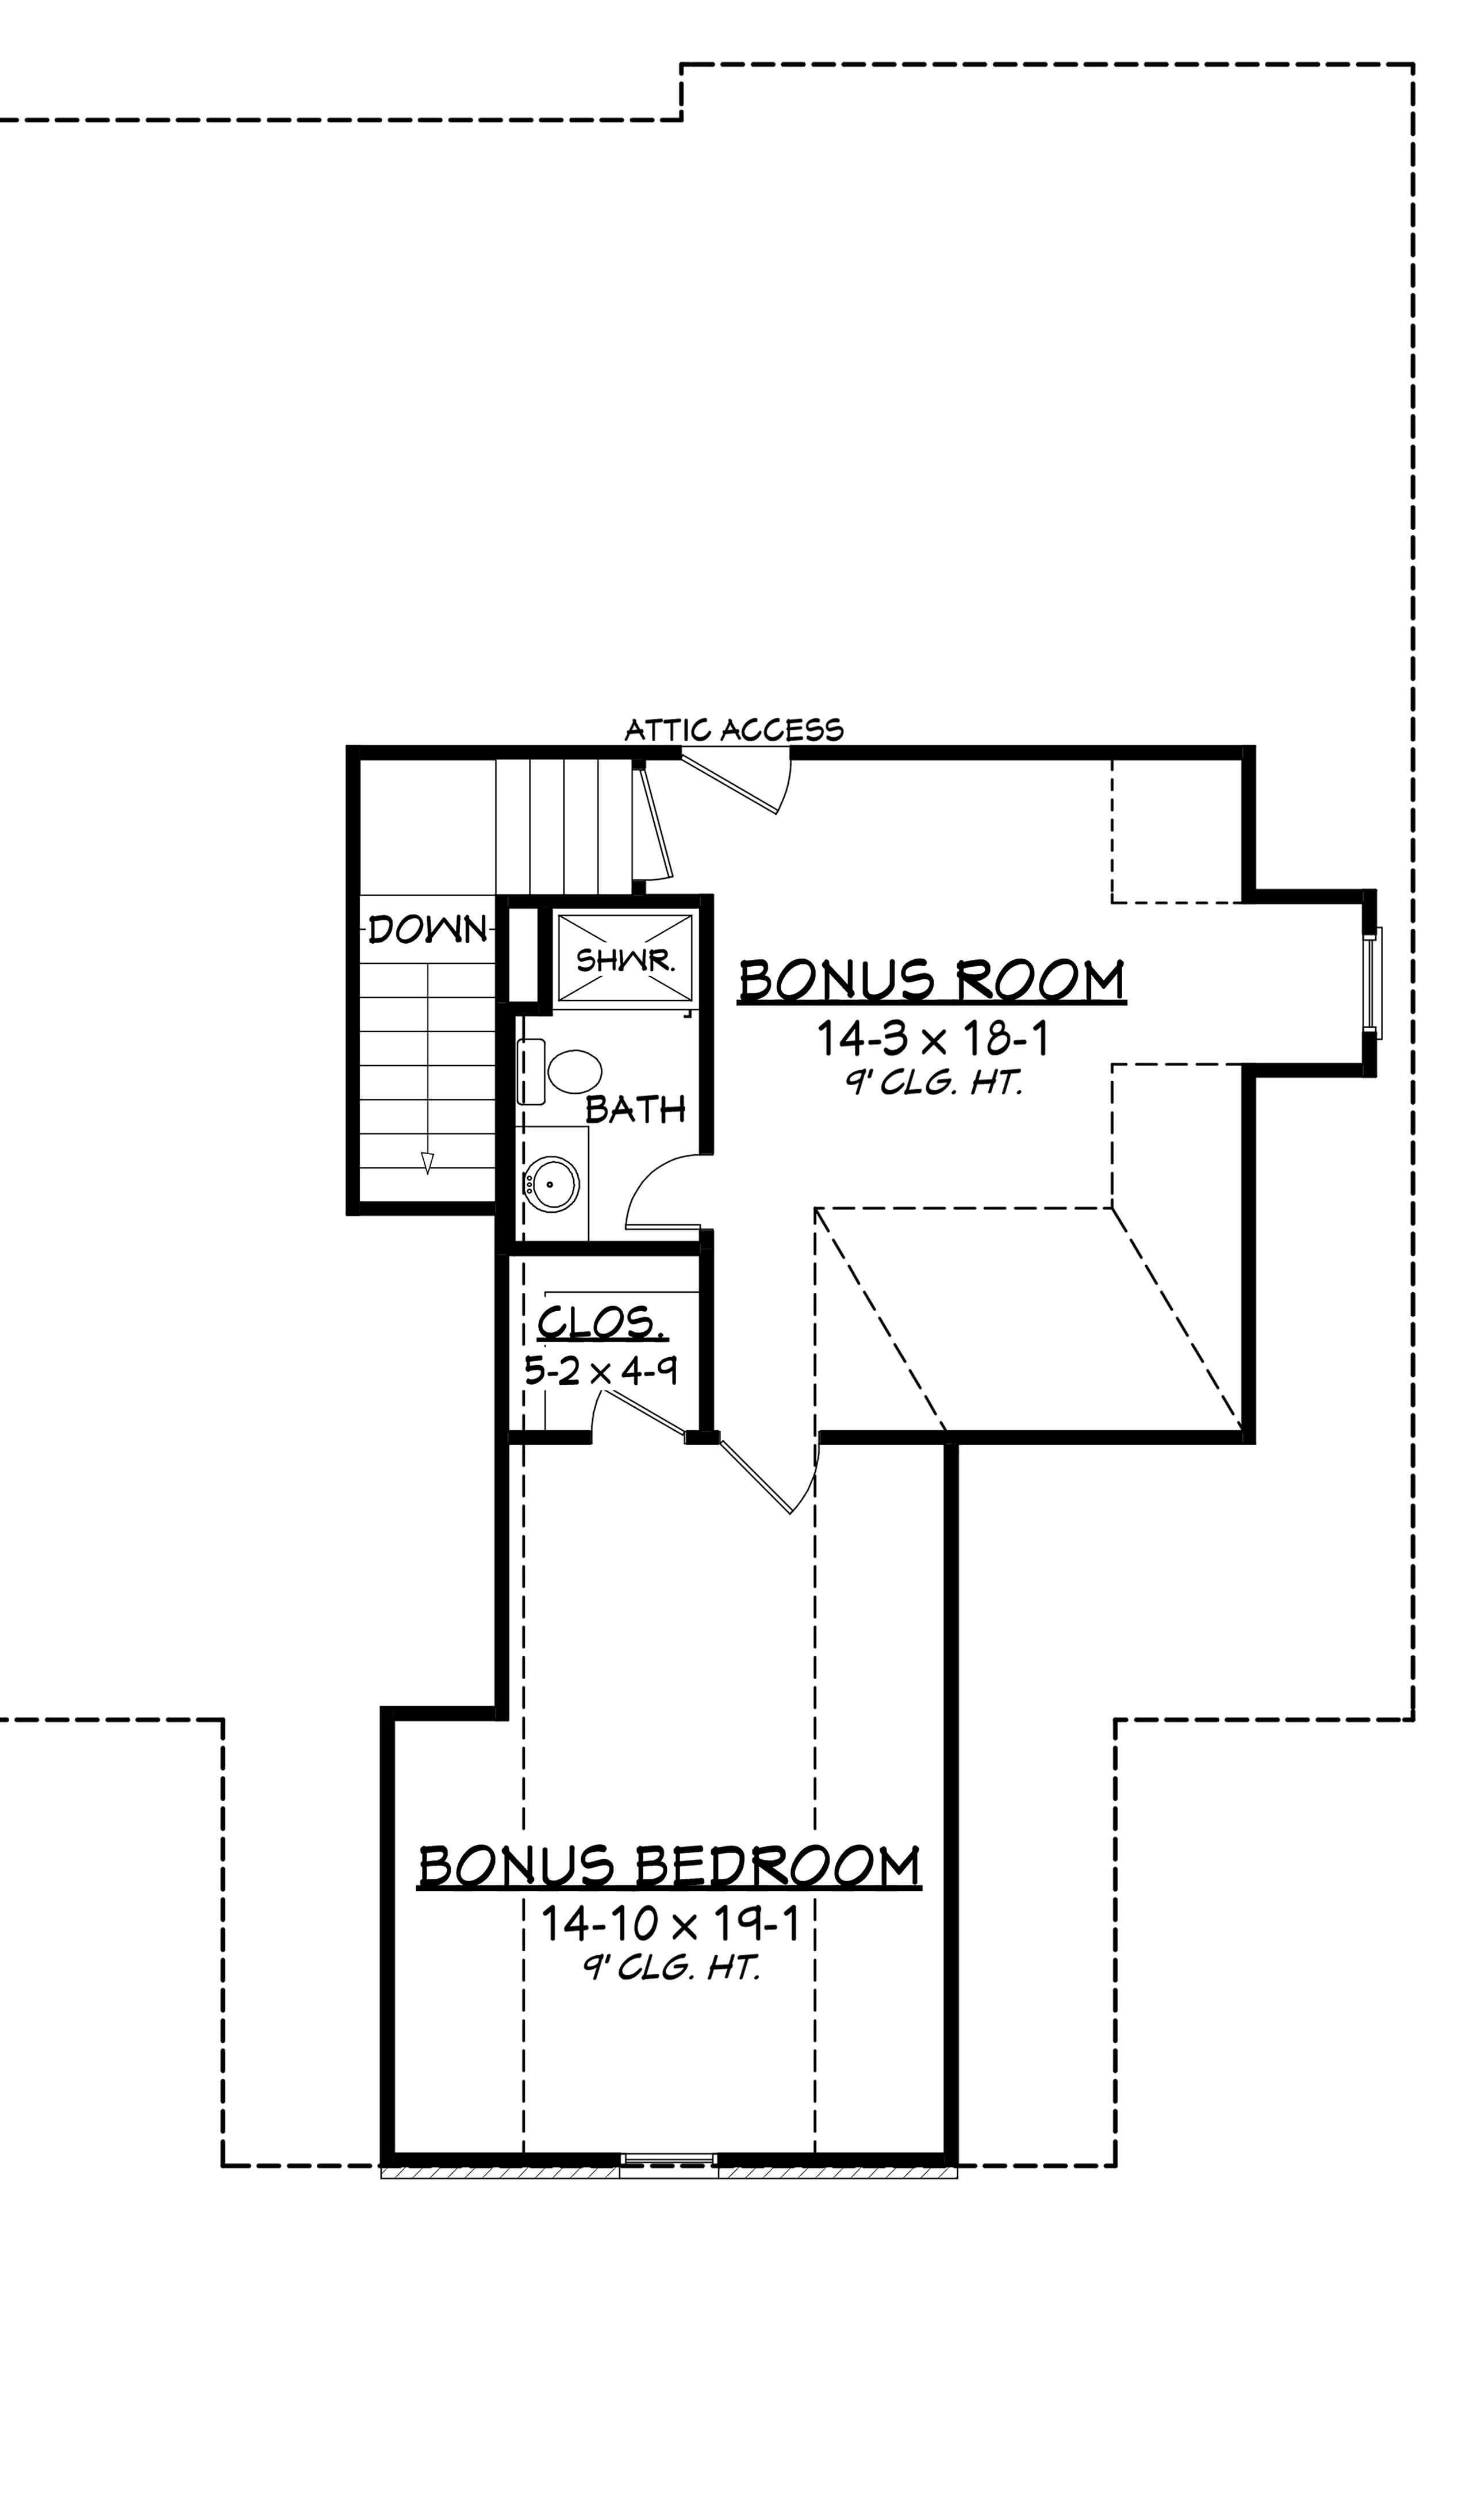 Traditional house plan with 4 bedrms 3194 sq ft 142 1167 for Floor plans with bonus room